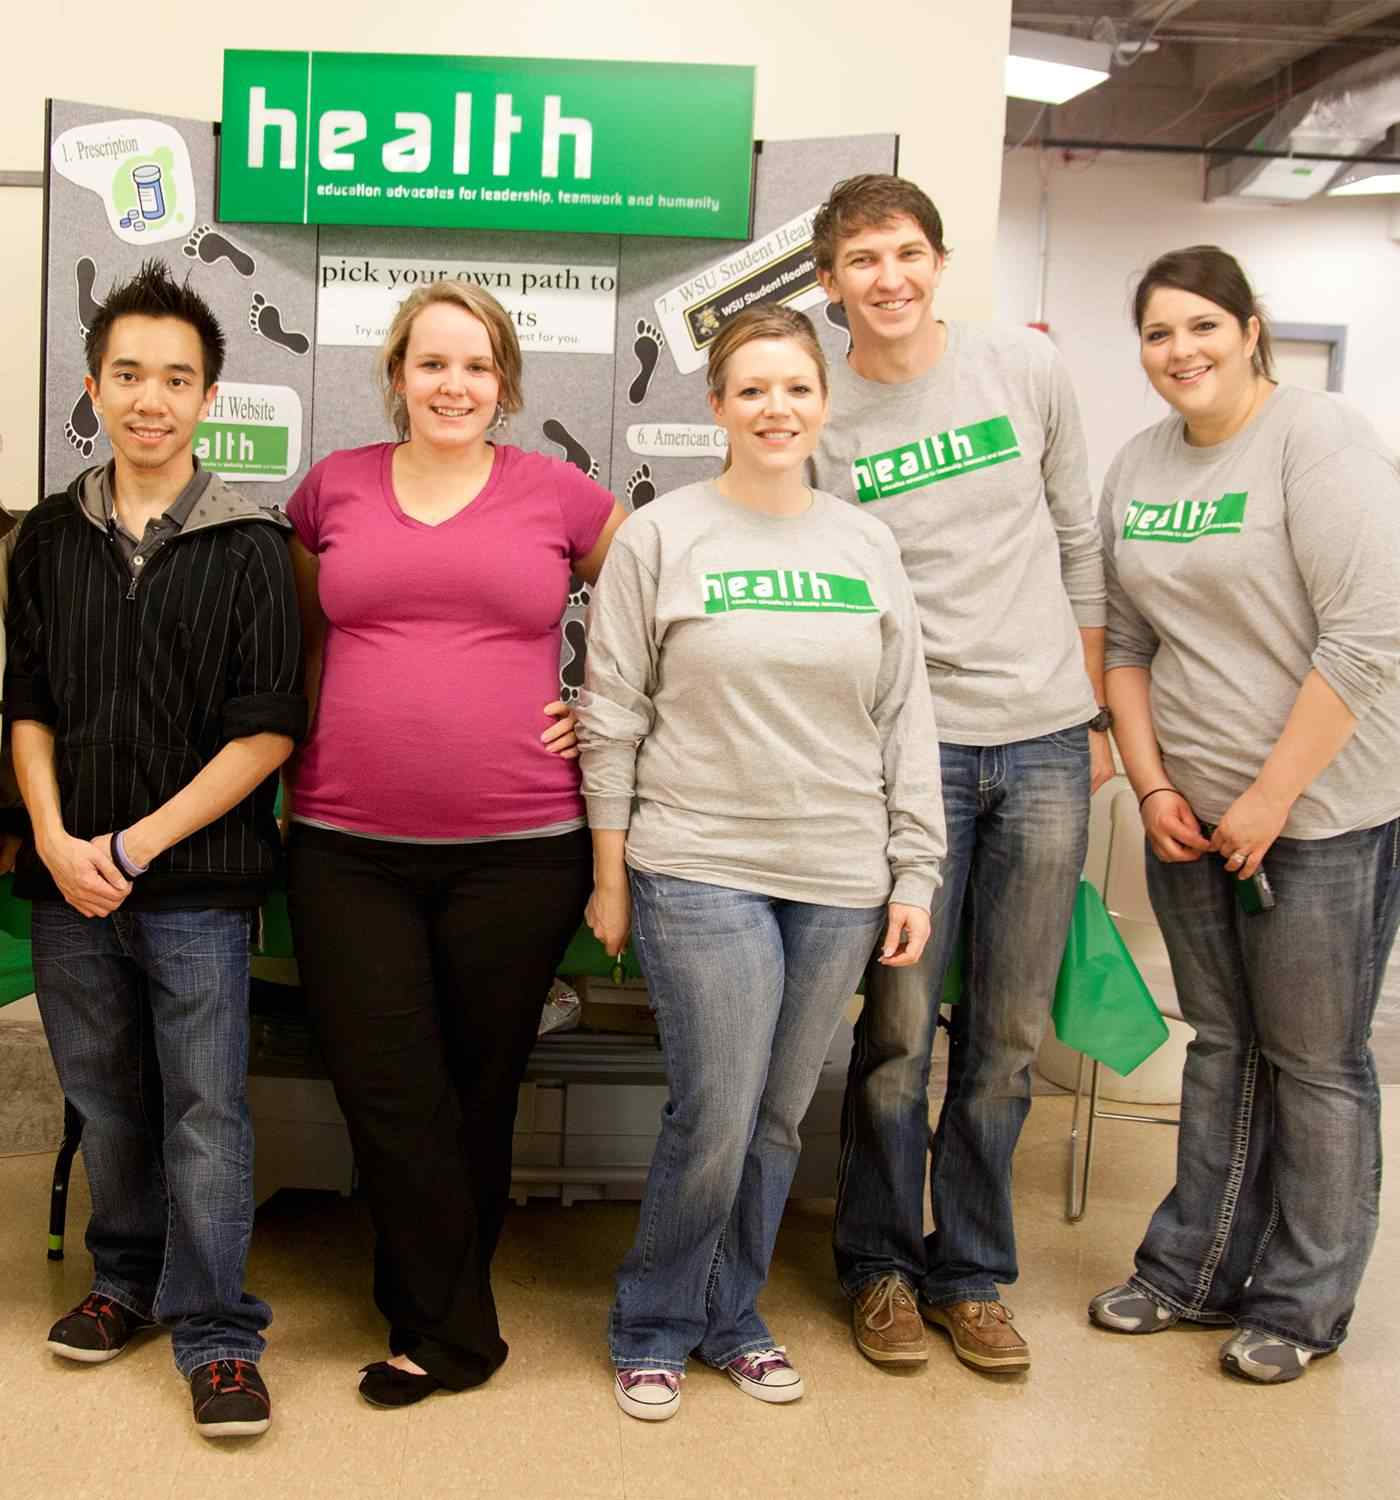 HEALTH students helped implement the Tobacco Free Campus Ambassador program